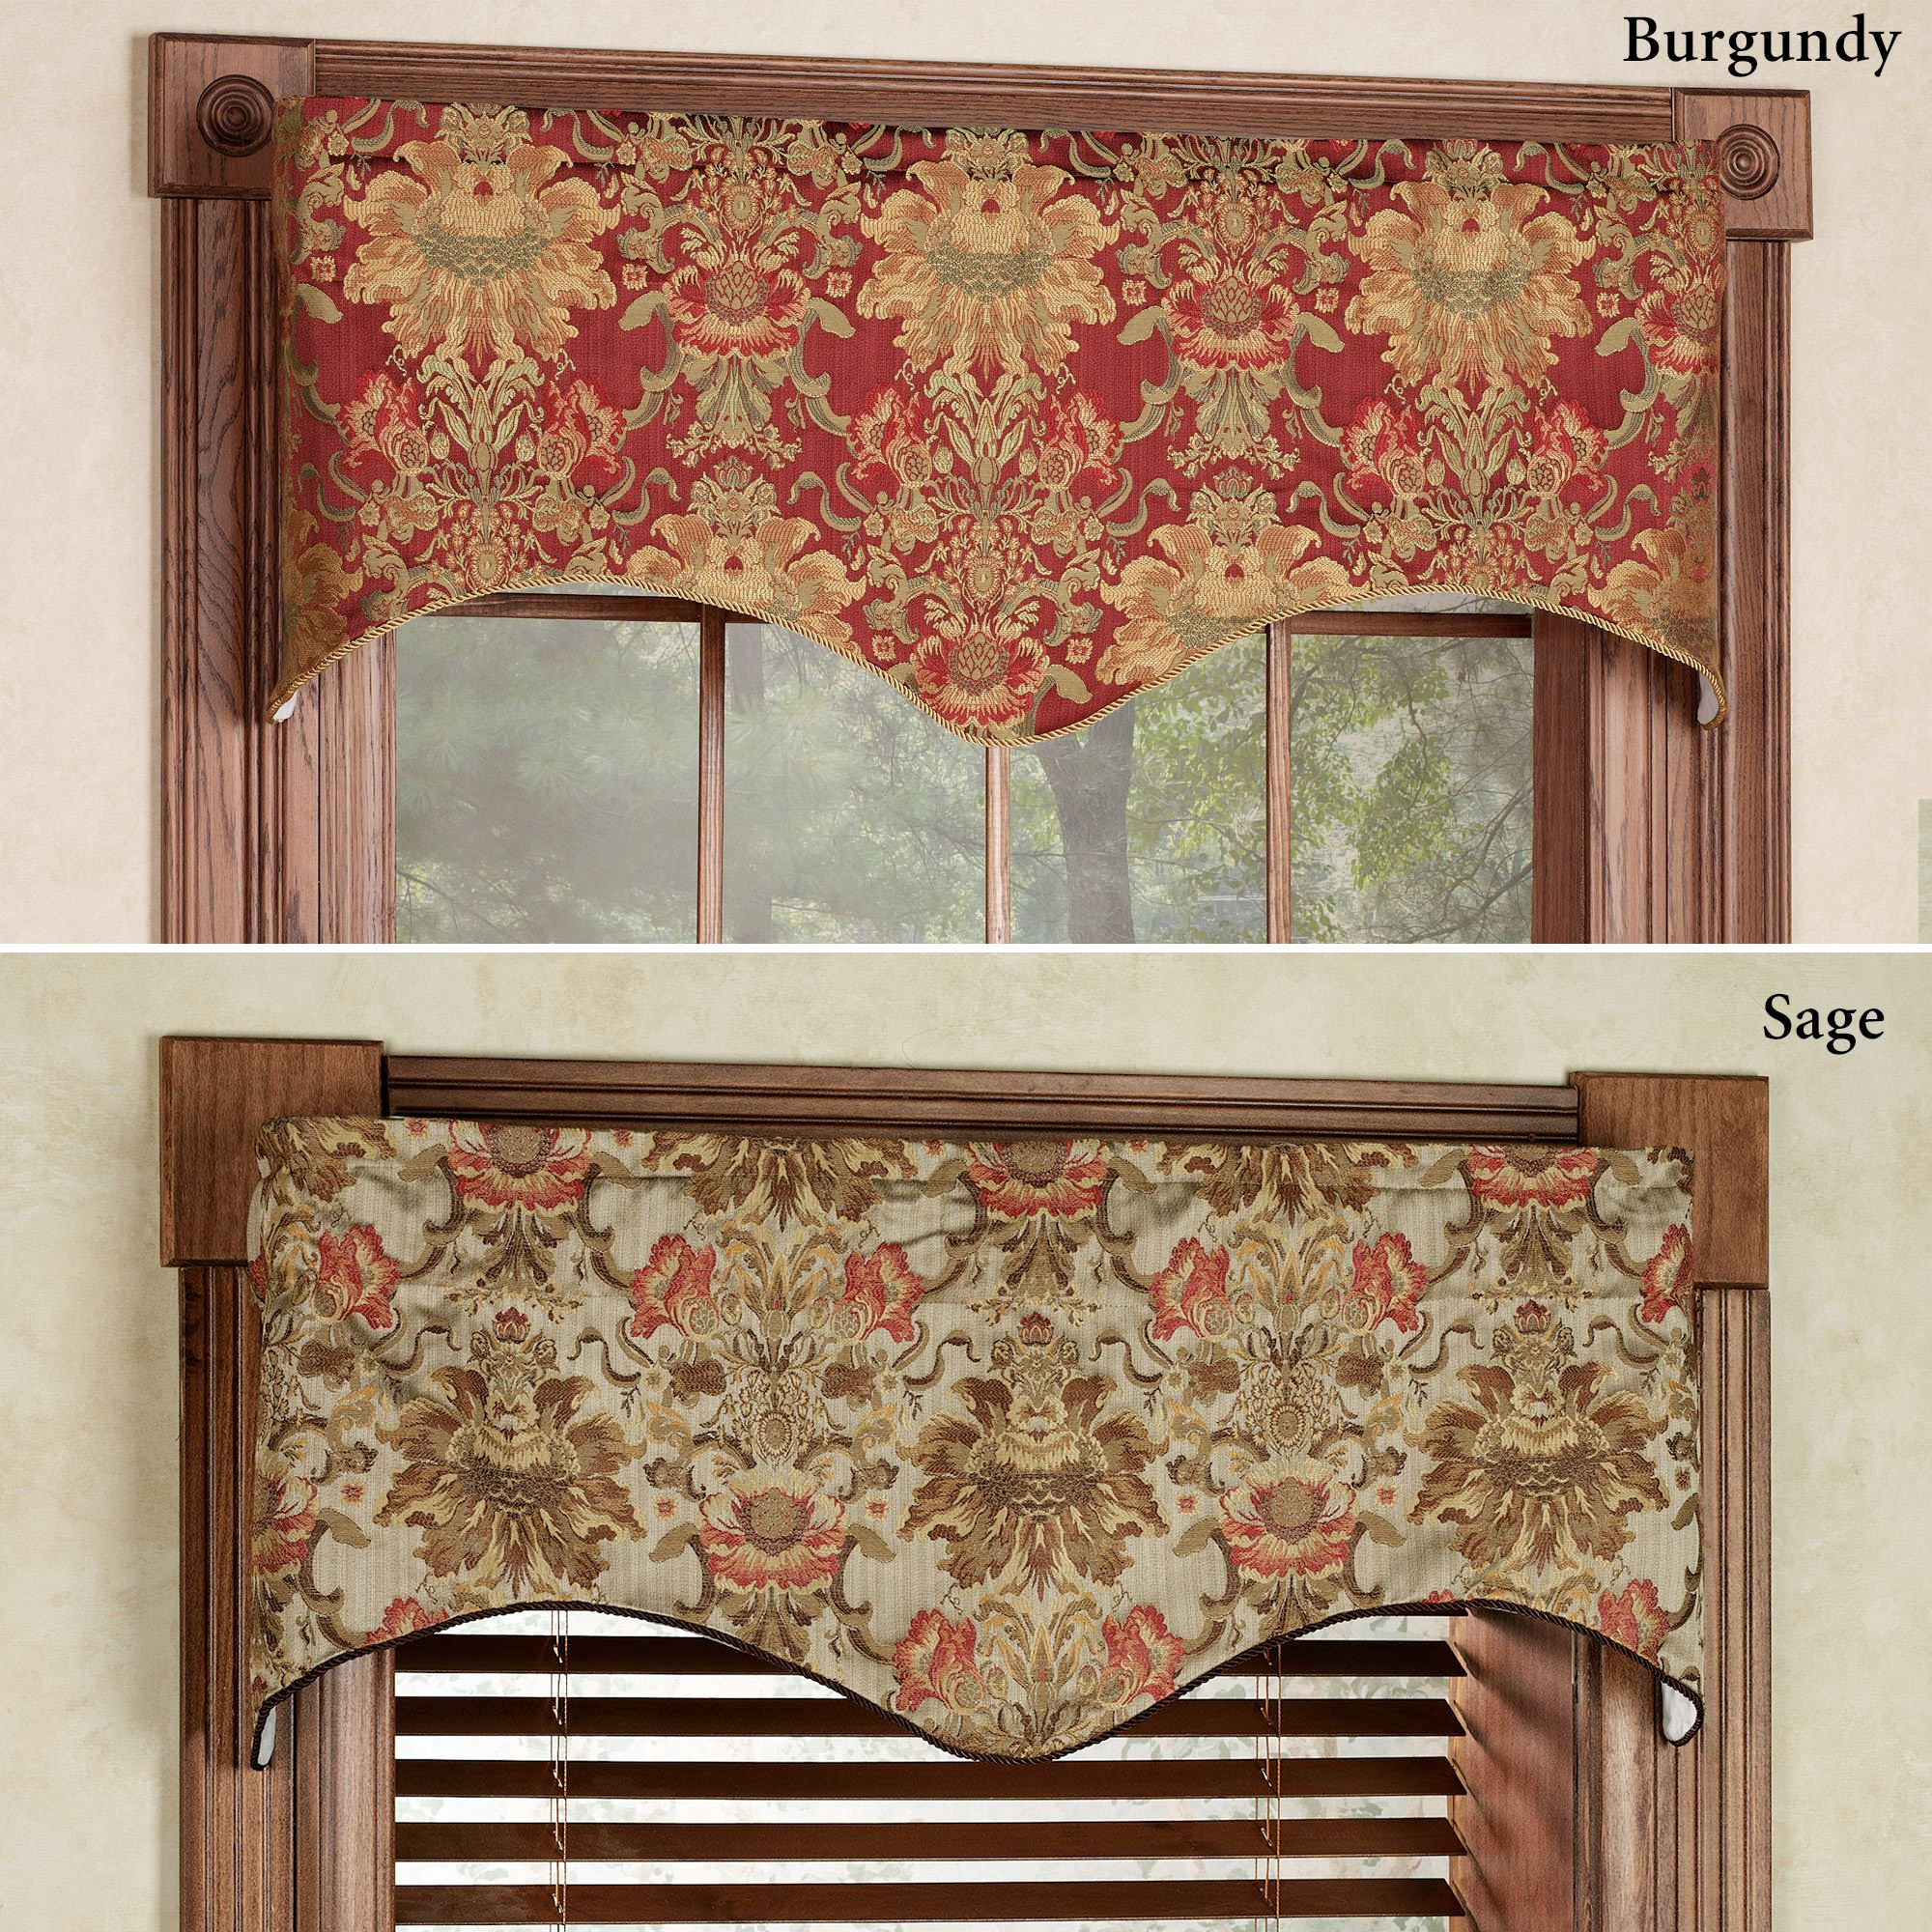 curtain curtains trends and for u burgundy valance kitchen picture shocking best valances zdif ideas mod collection patterns